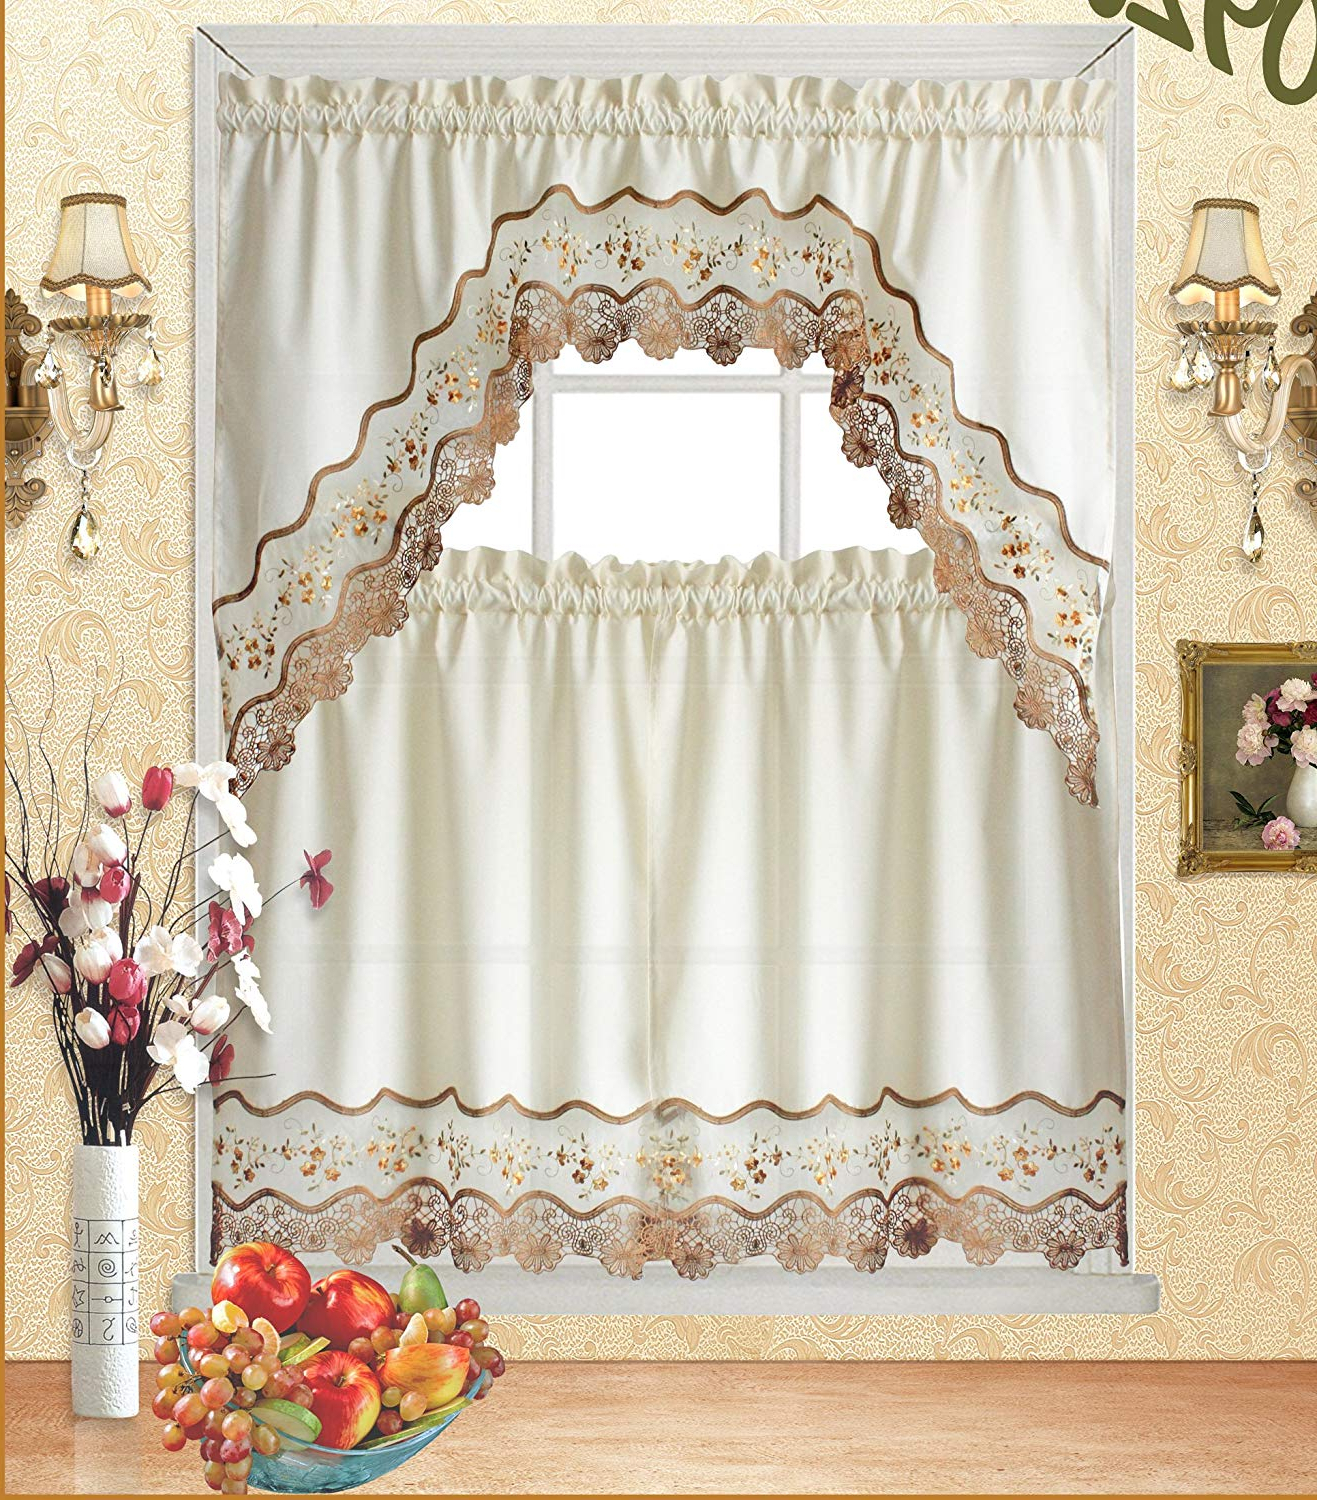 """Best And Newest Fancy Collection 3pc Beige With Embroidery Floral Kitchen/cafe Curtain Tier And Valance Set 001092 (60"""" X 38"""", Gold/beige/beige) With Regard To Cottage Ivy Curtain Tiers (View 13 of 20)"""